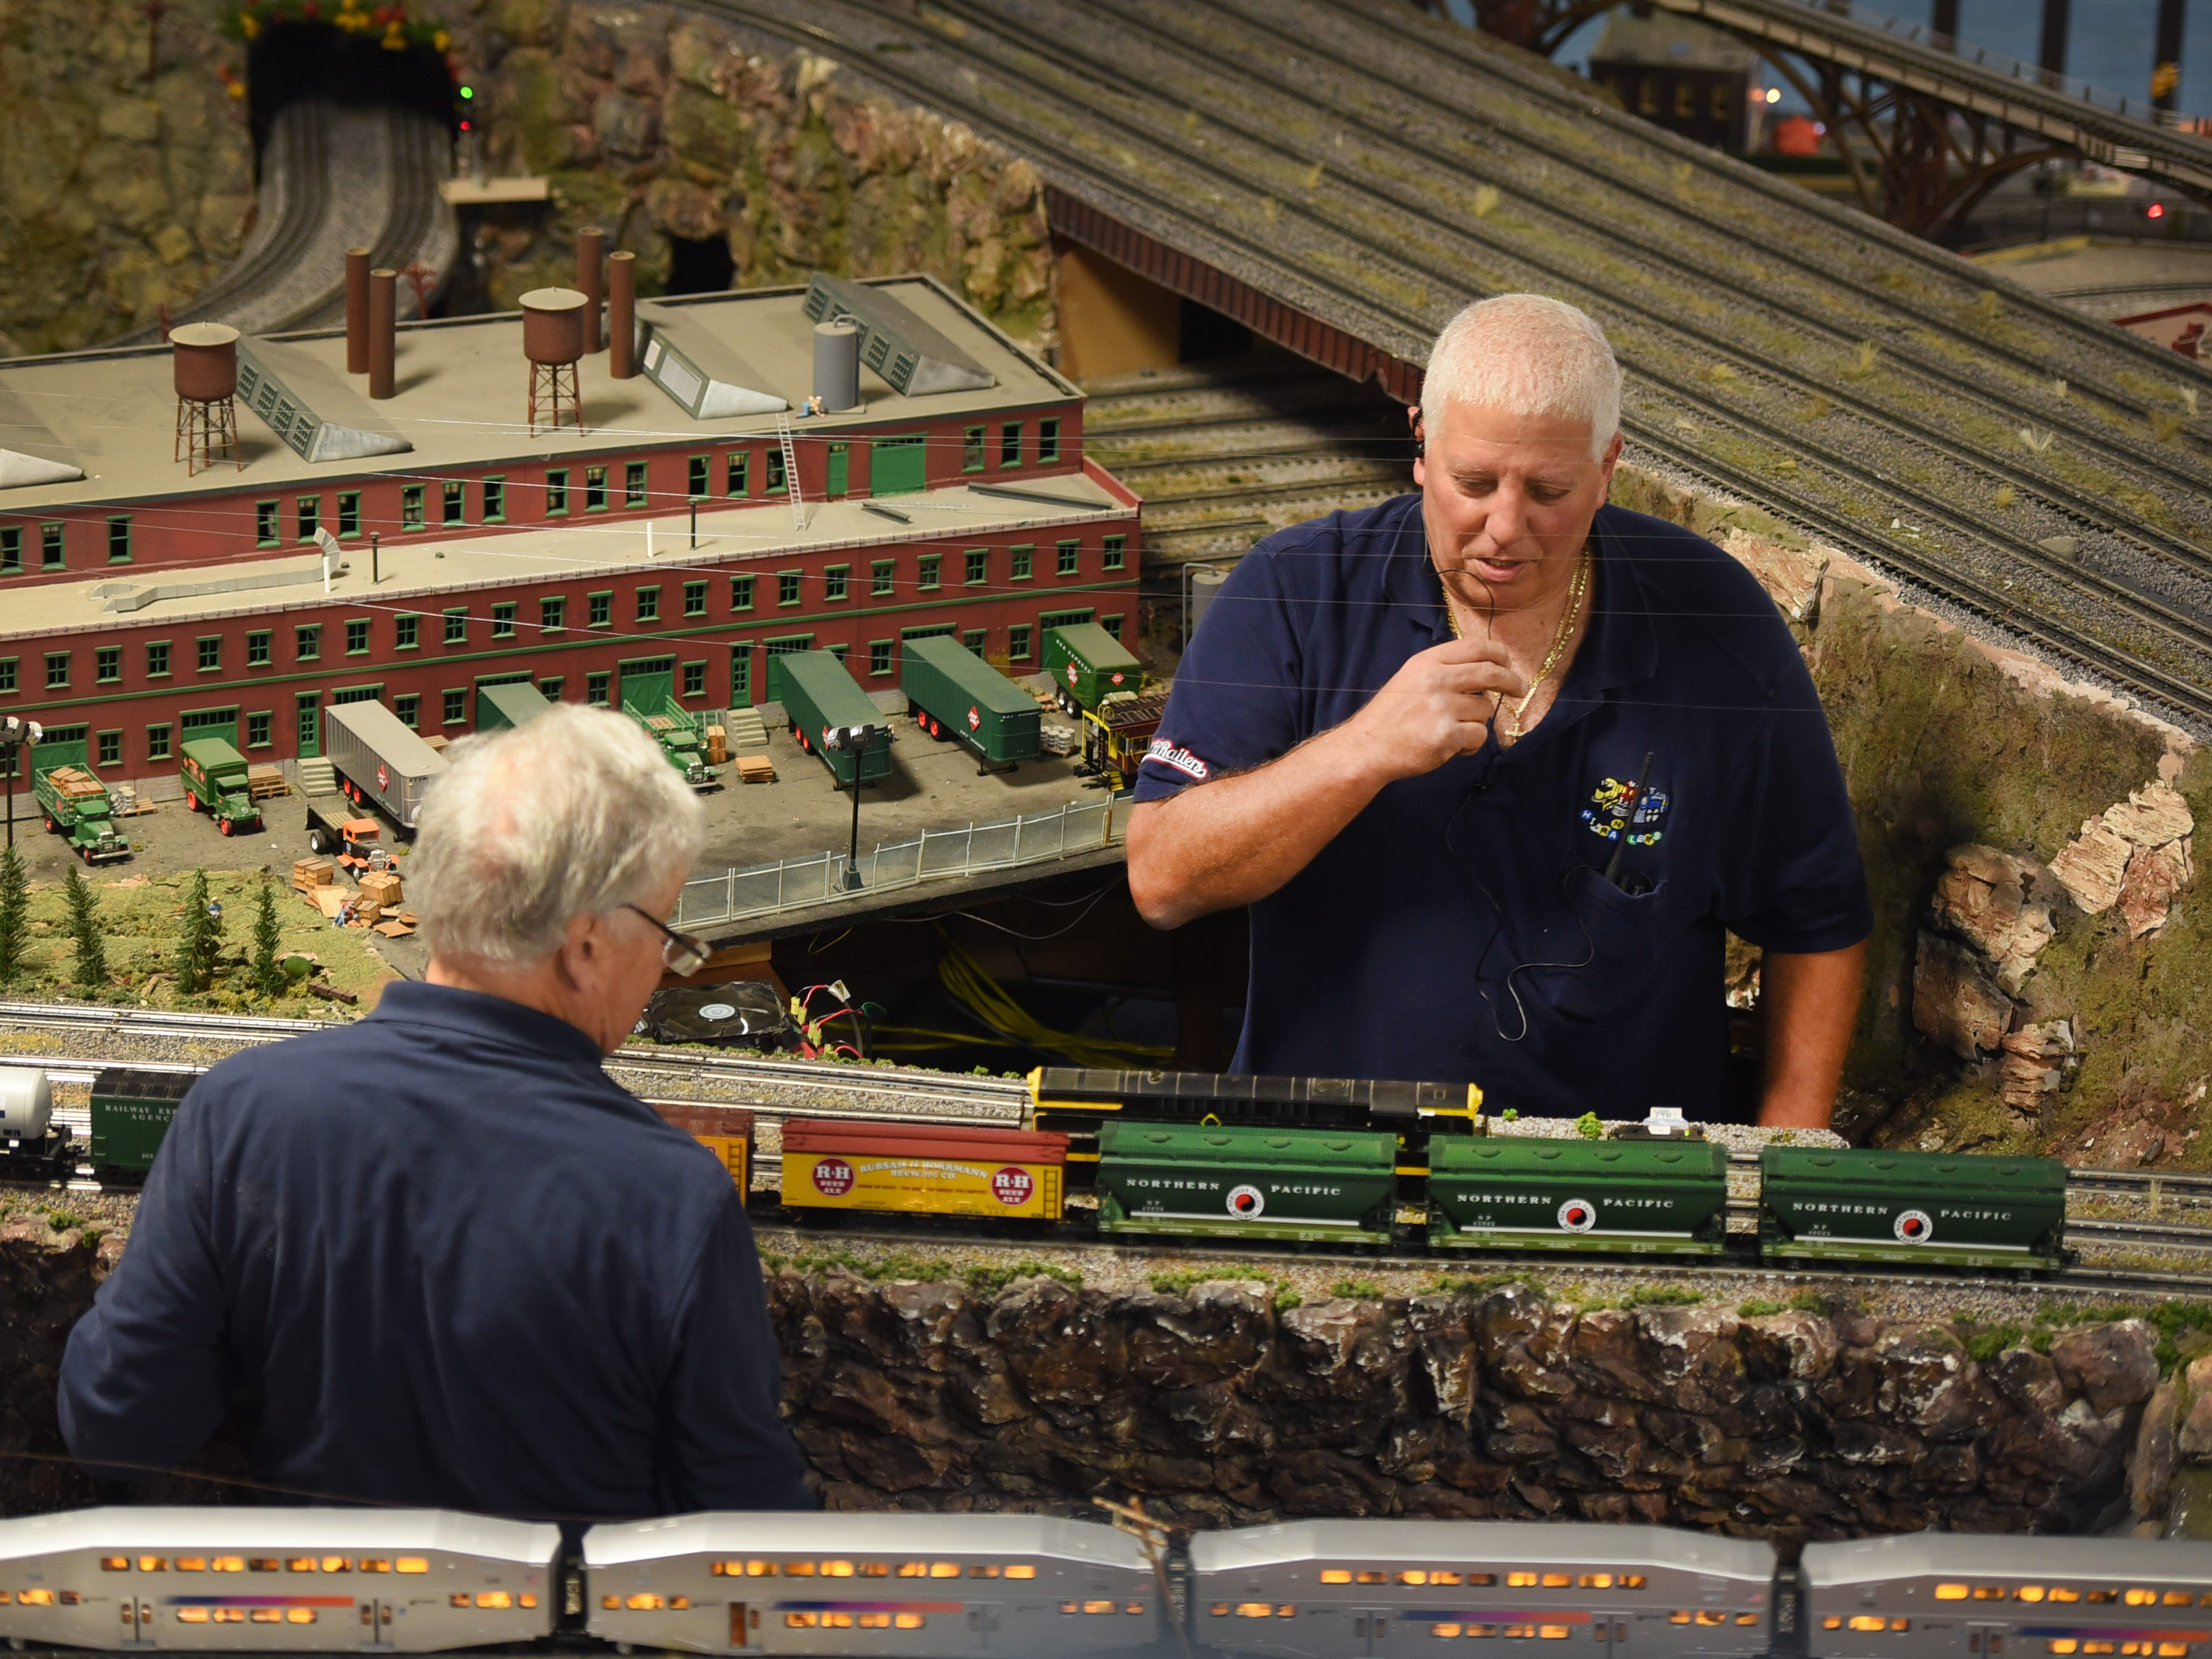 Ben Fioriello (R), President of the NJ Hi-Railers club, checks the display as the club holds a periodic show for the public at Silk City Station in Paterson on 10/28/18.